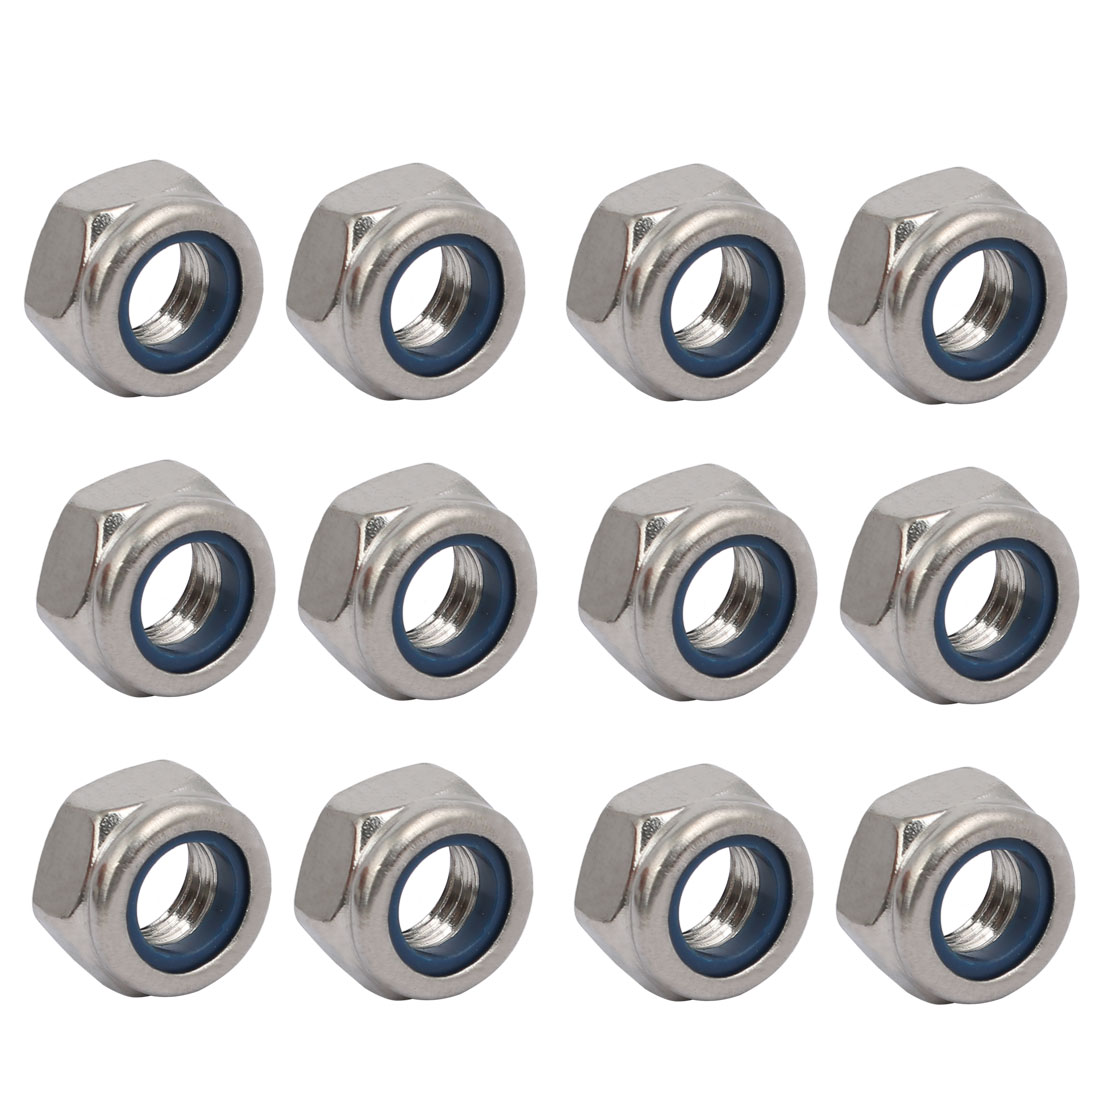 12pcs M8 x 1.25mm Pitch Metric Thread 304 Stainless Steel Left Hand Lock Nuts